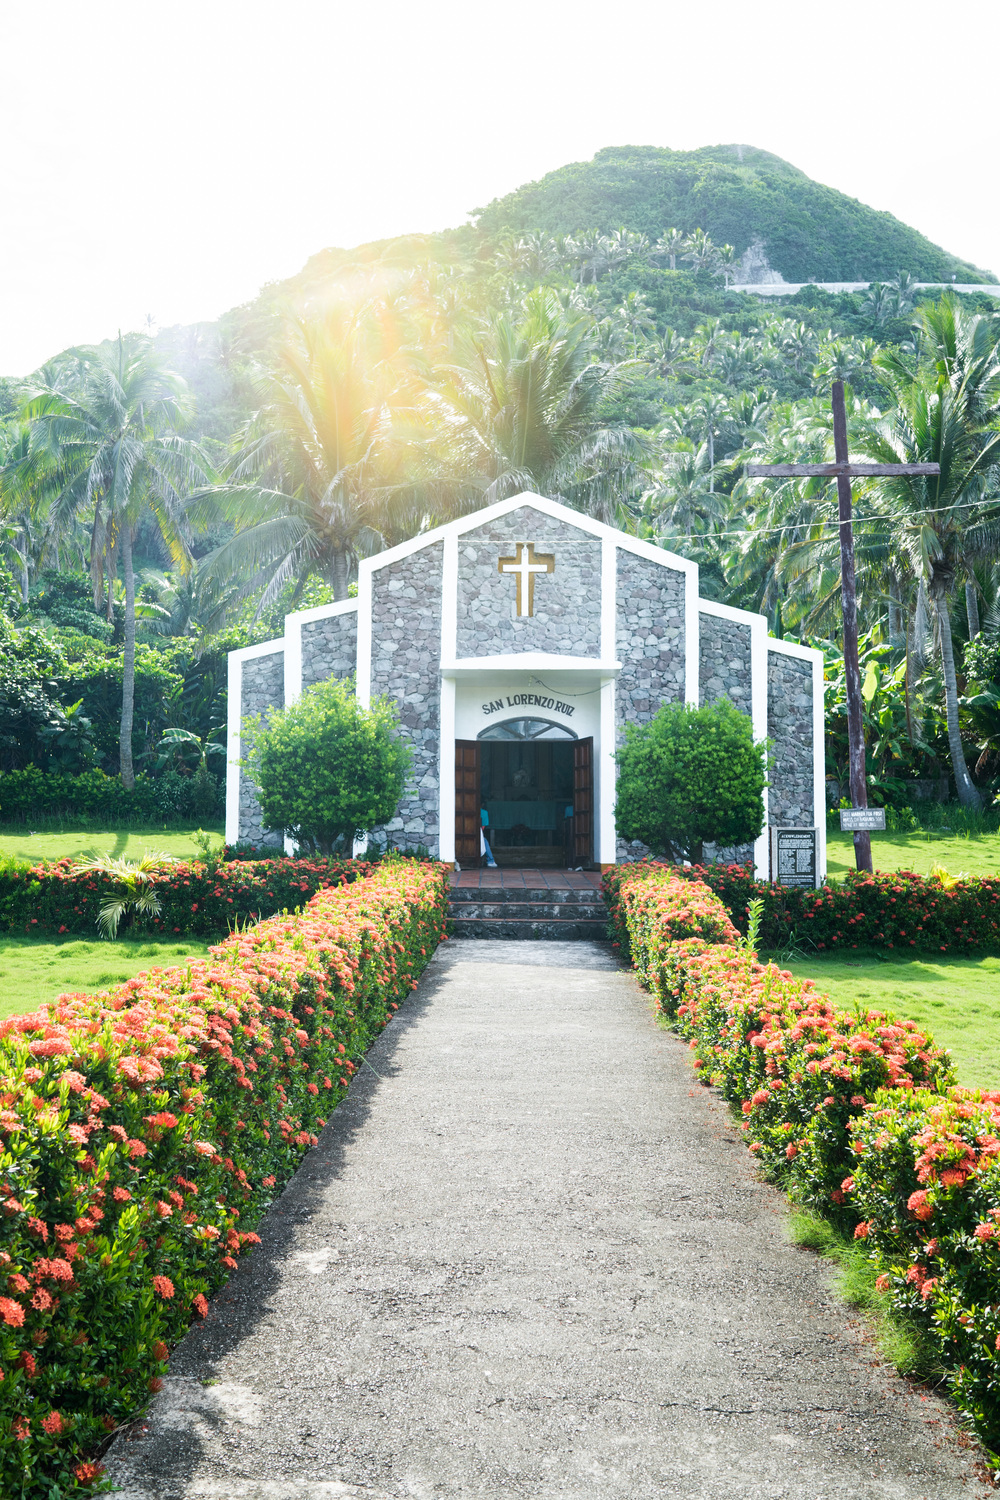 This is the church where they held the first catholic mass in Batanes